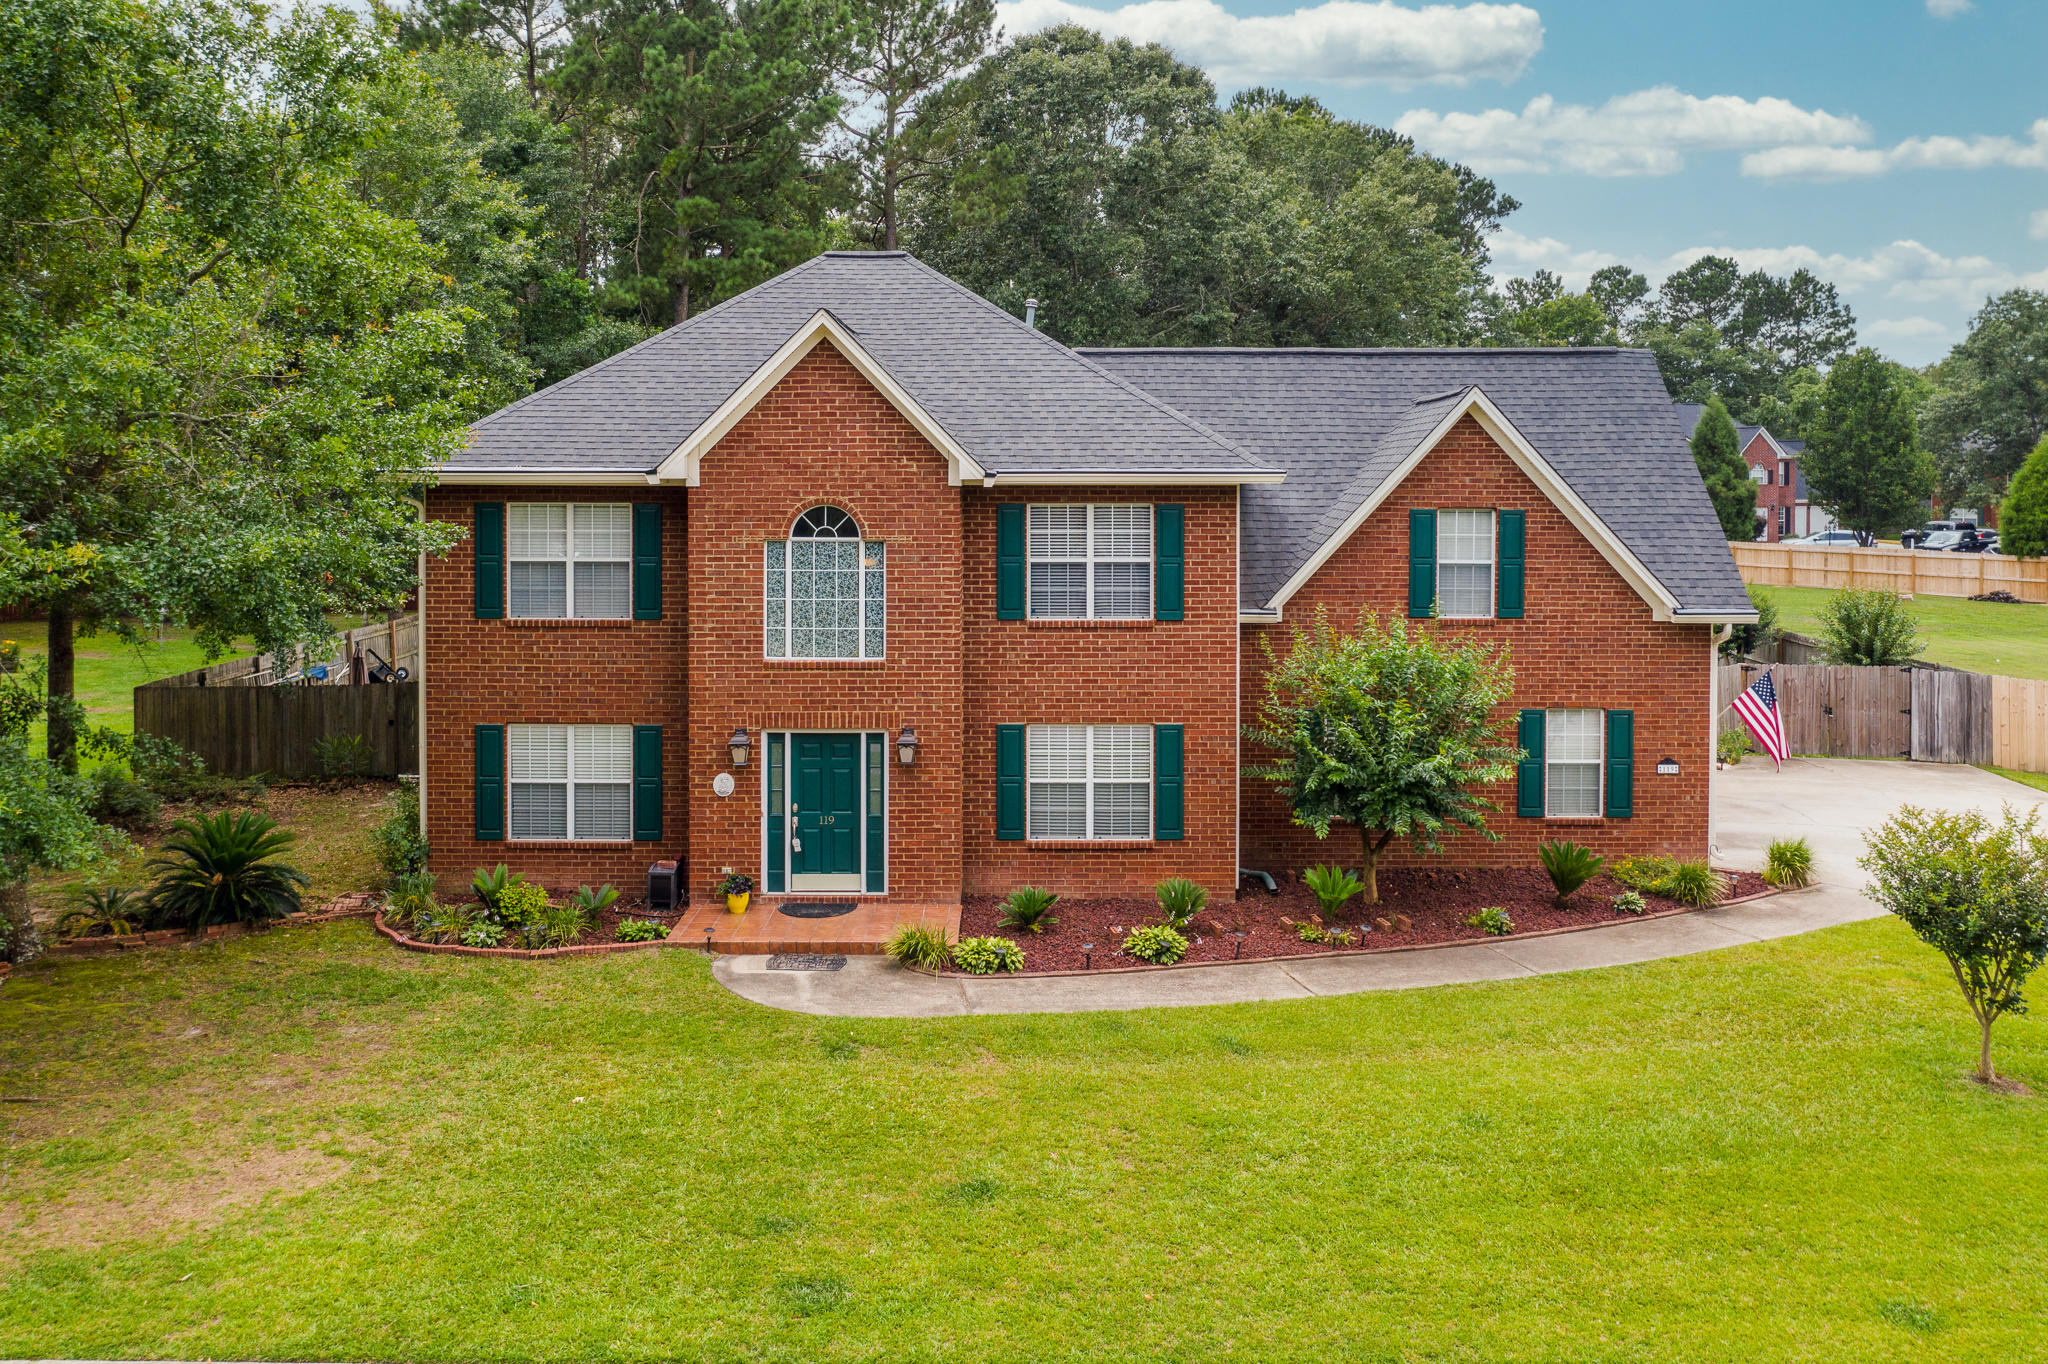 119 N Knightsbridge Court Goose Creek, SC 29445